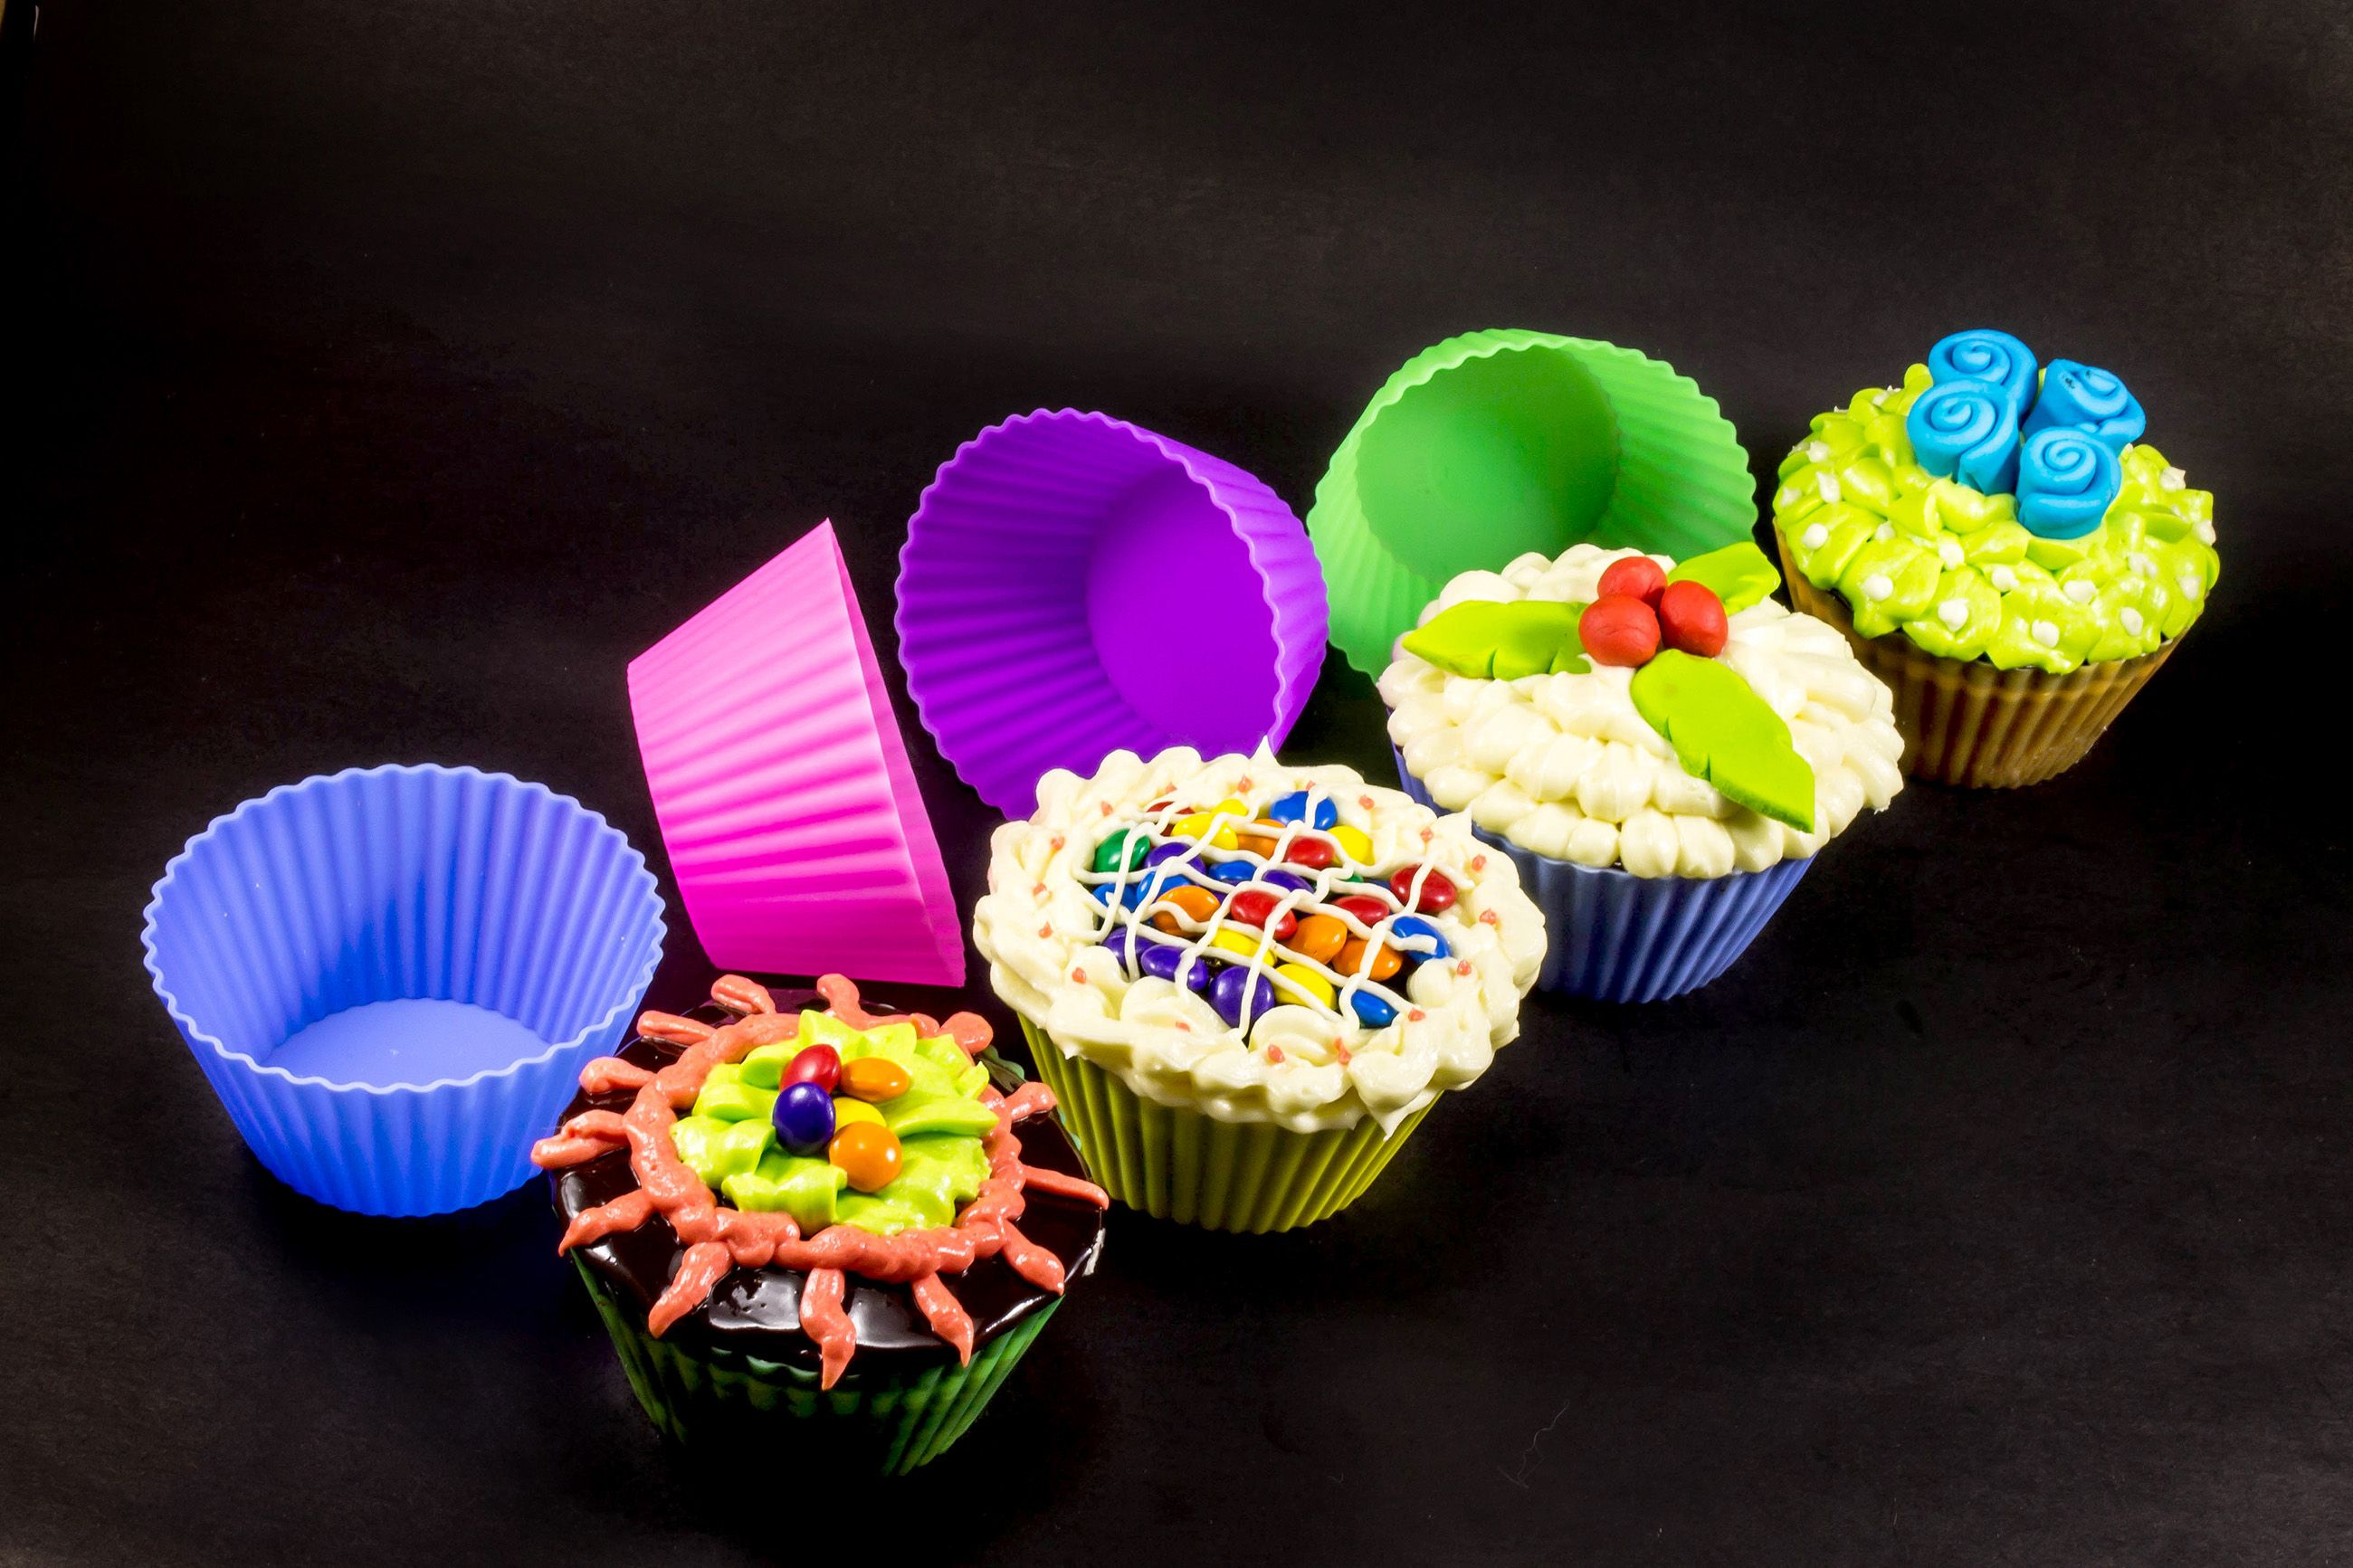 #baking_cups #silicone_baking_cups